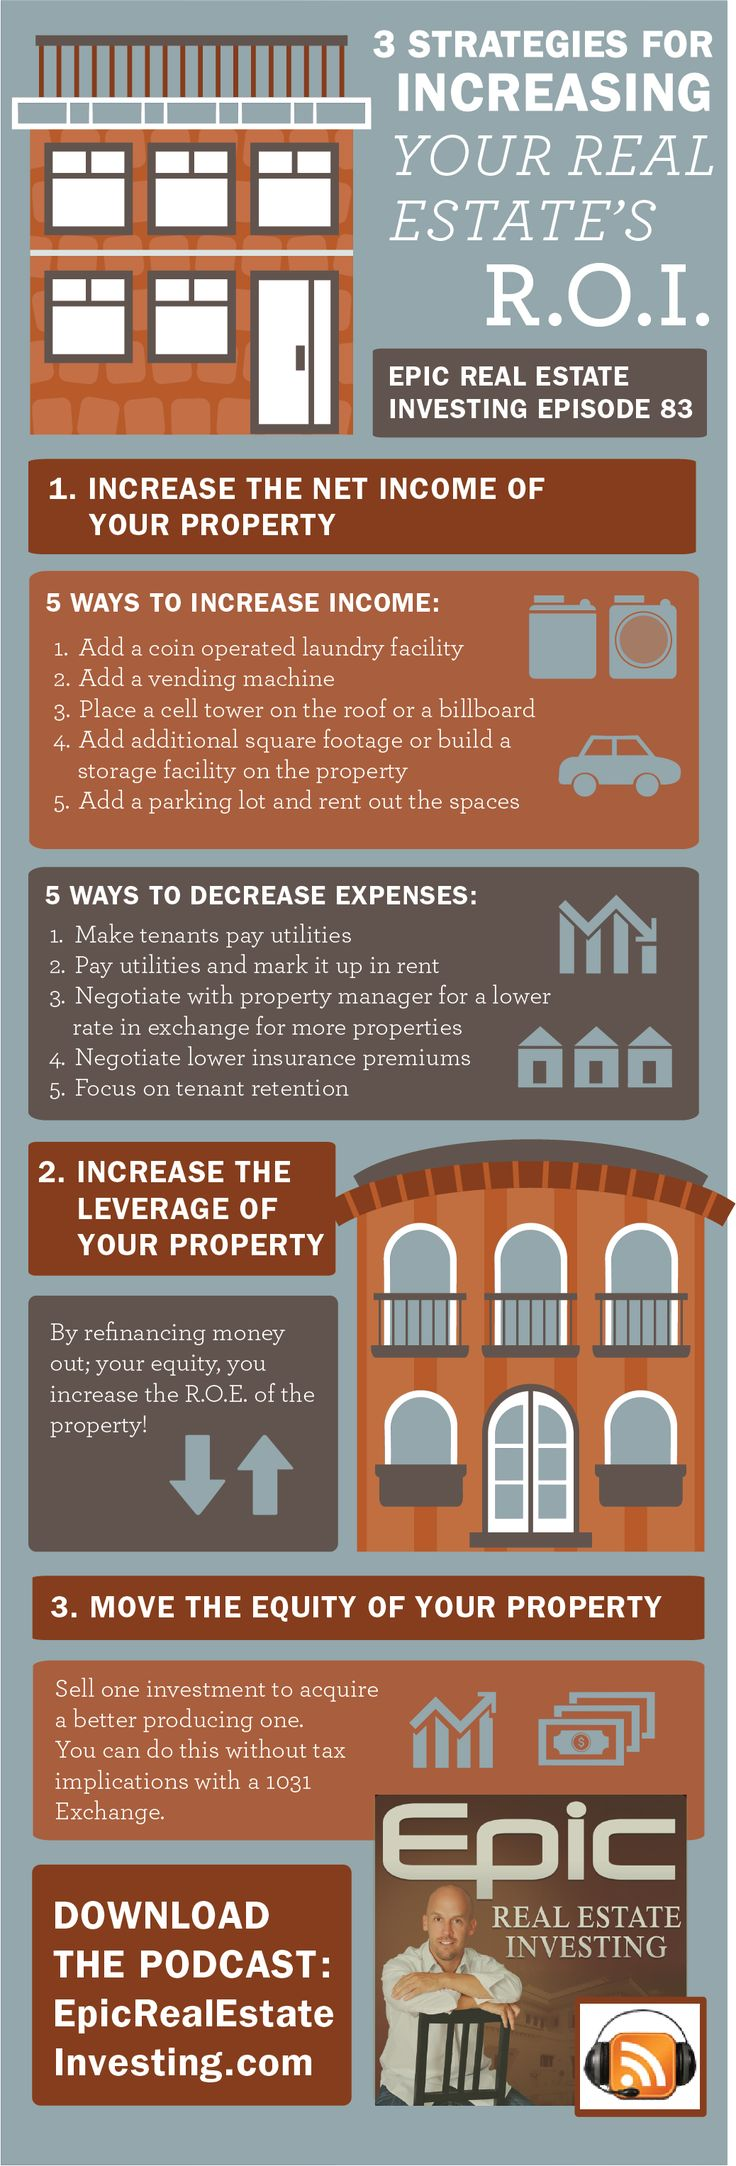 How to Increase the ROI of your Real Estate Investment Portfolio | Epic Real Estate Investing #Podcast #Infographic